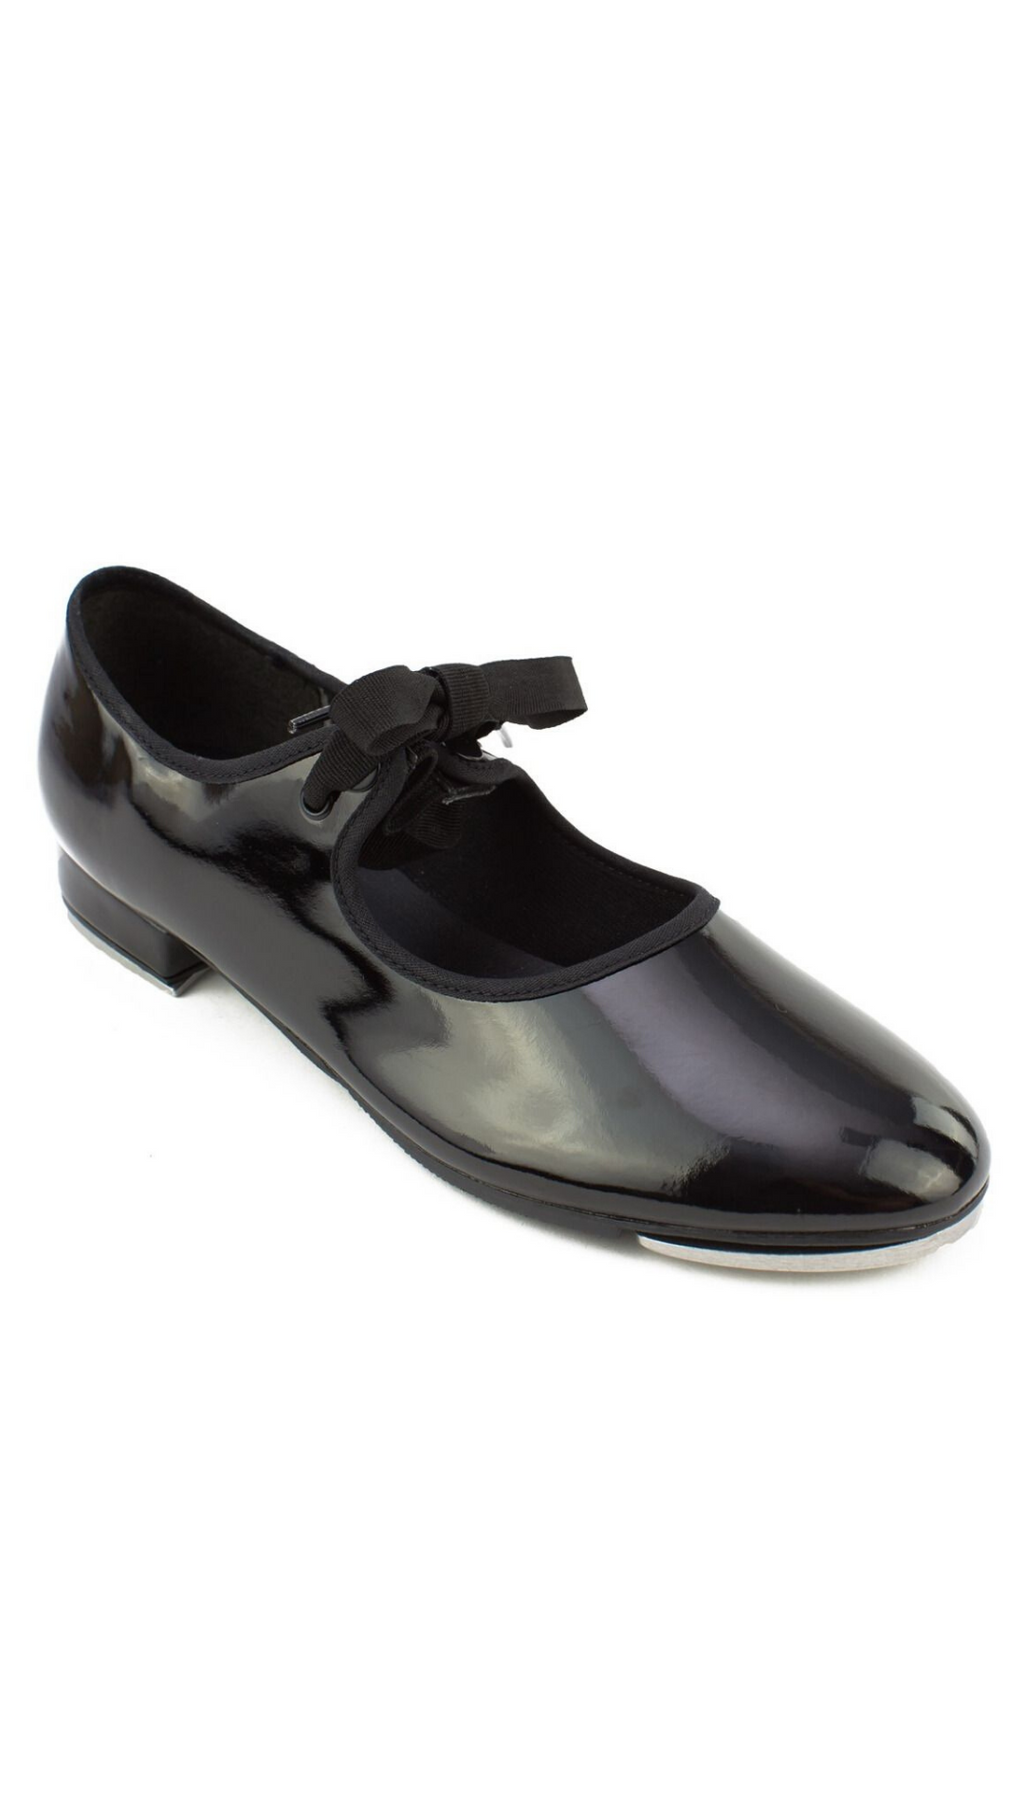 Val Tie and Snap Tap Shoe TA35-Child (Patent Black)